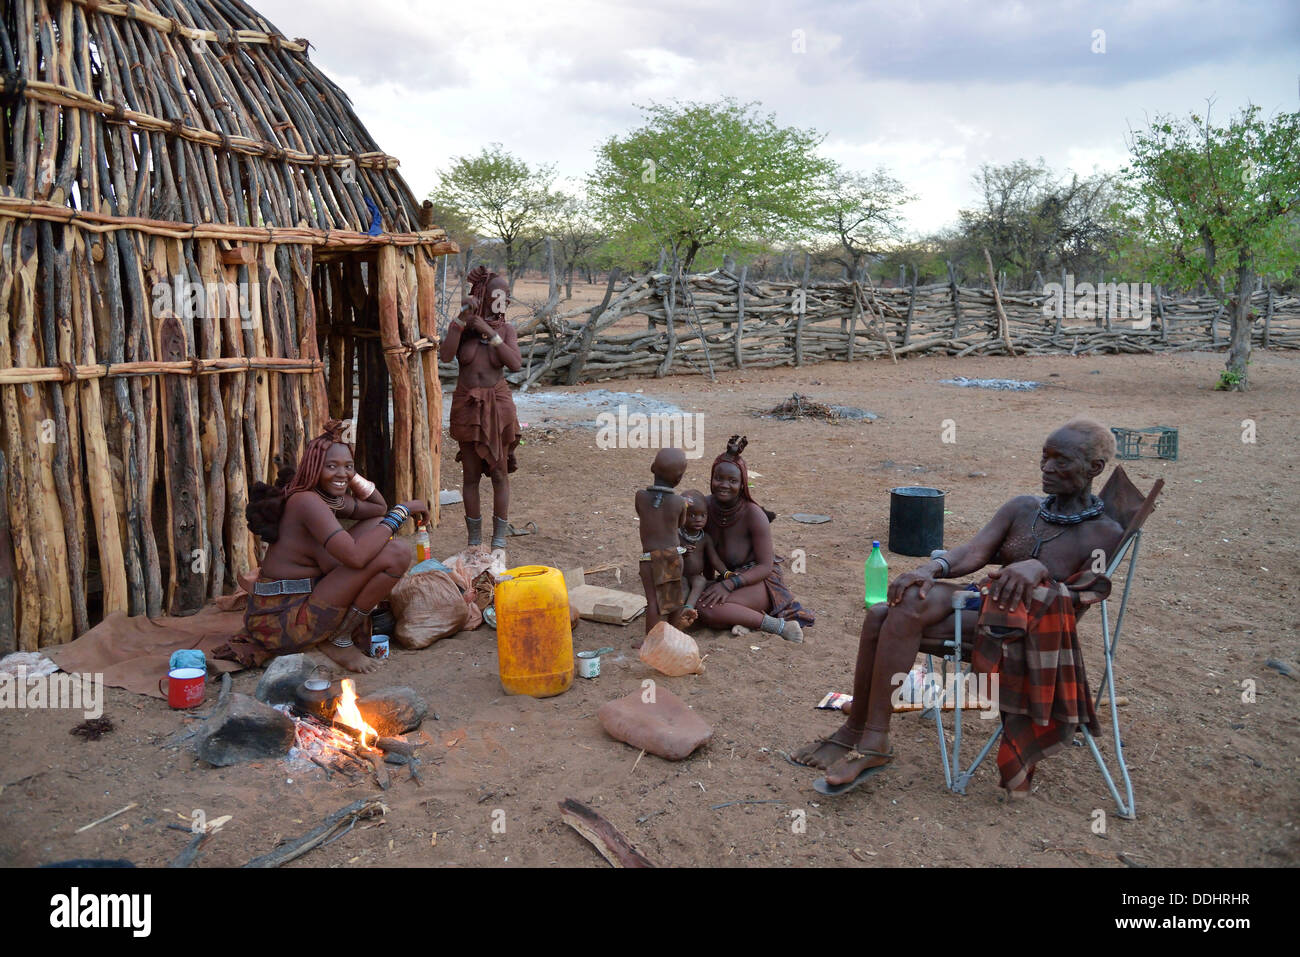 Chief Hikuminue Kapika, chief of the Namibian Himba, with his family at the fire in his kraal - Stock Image